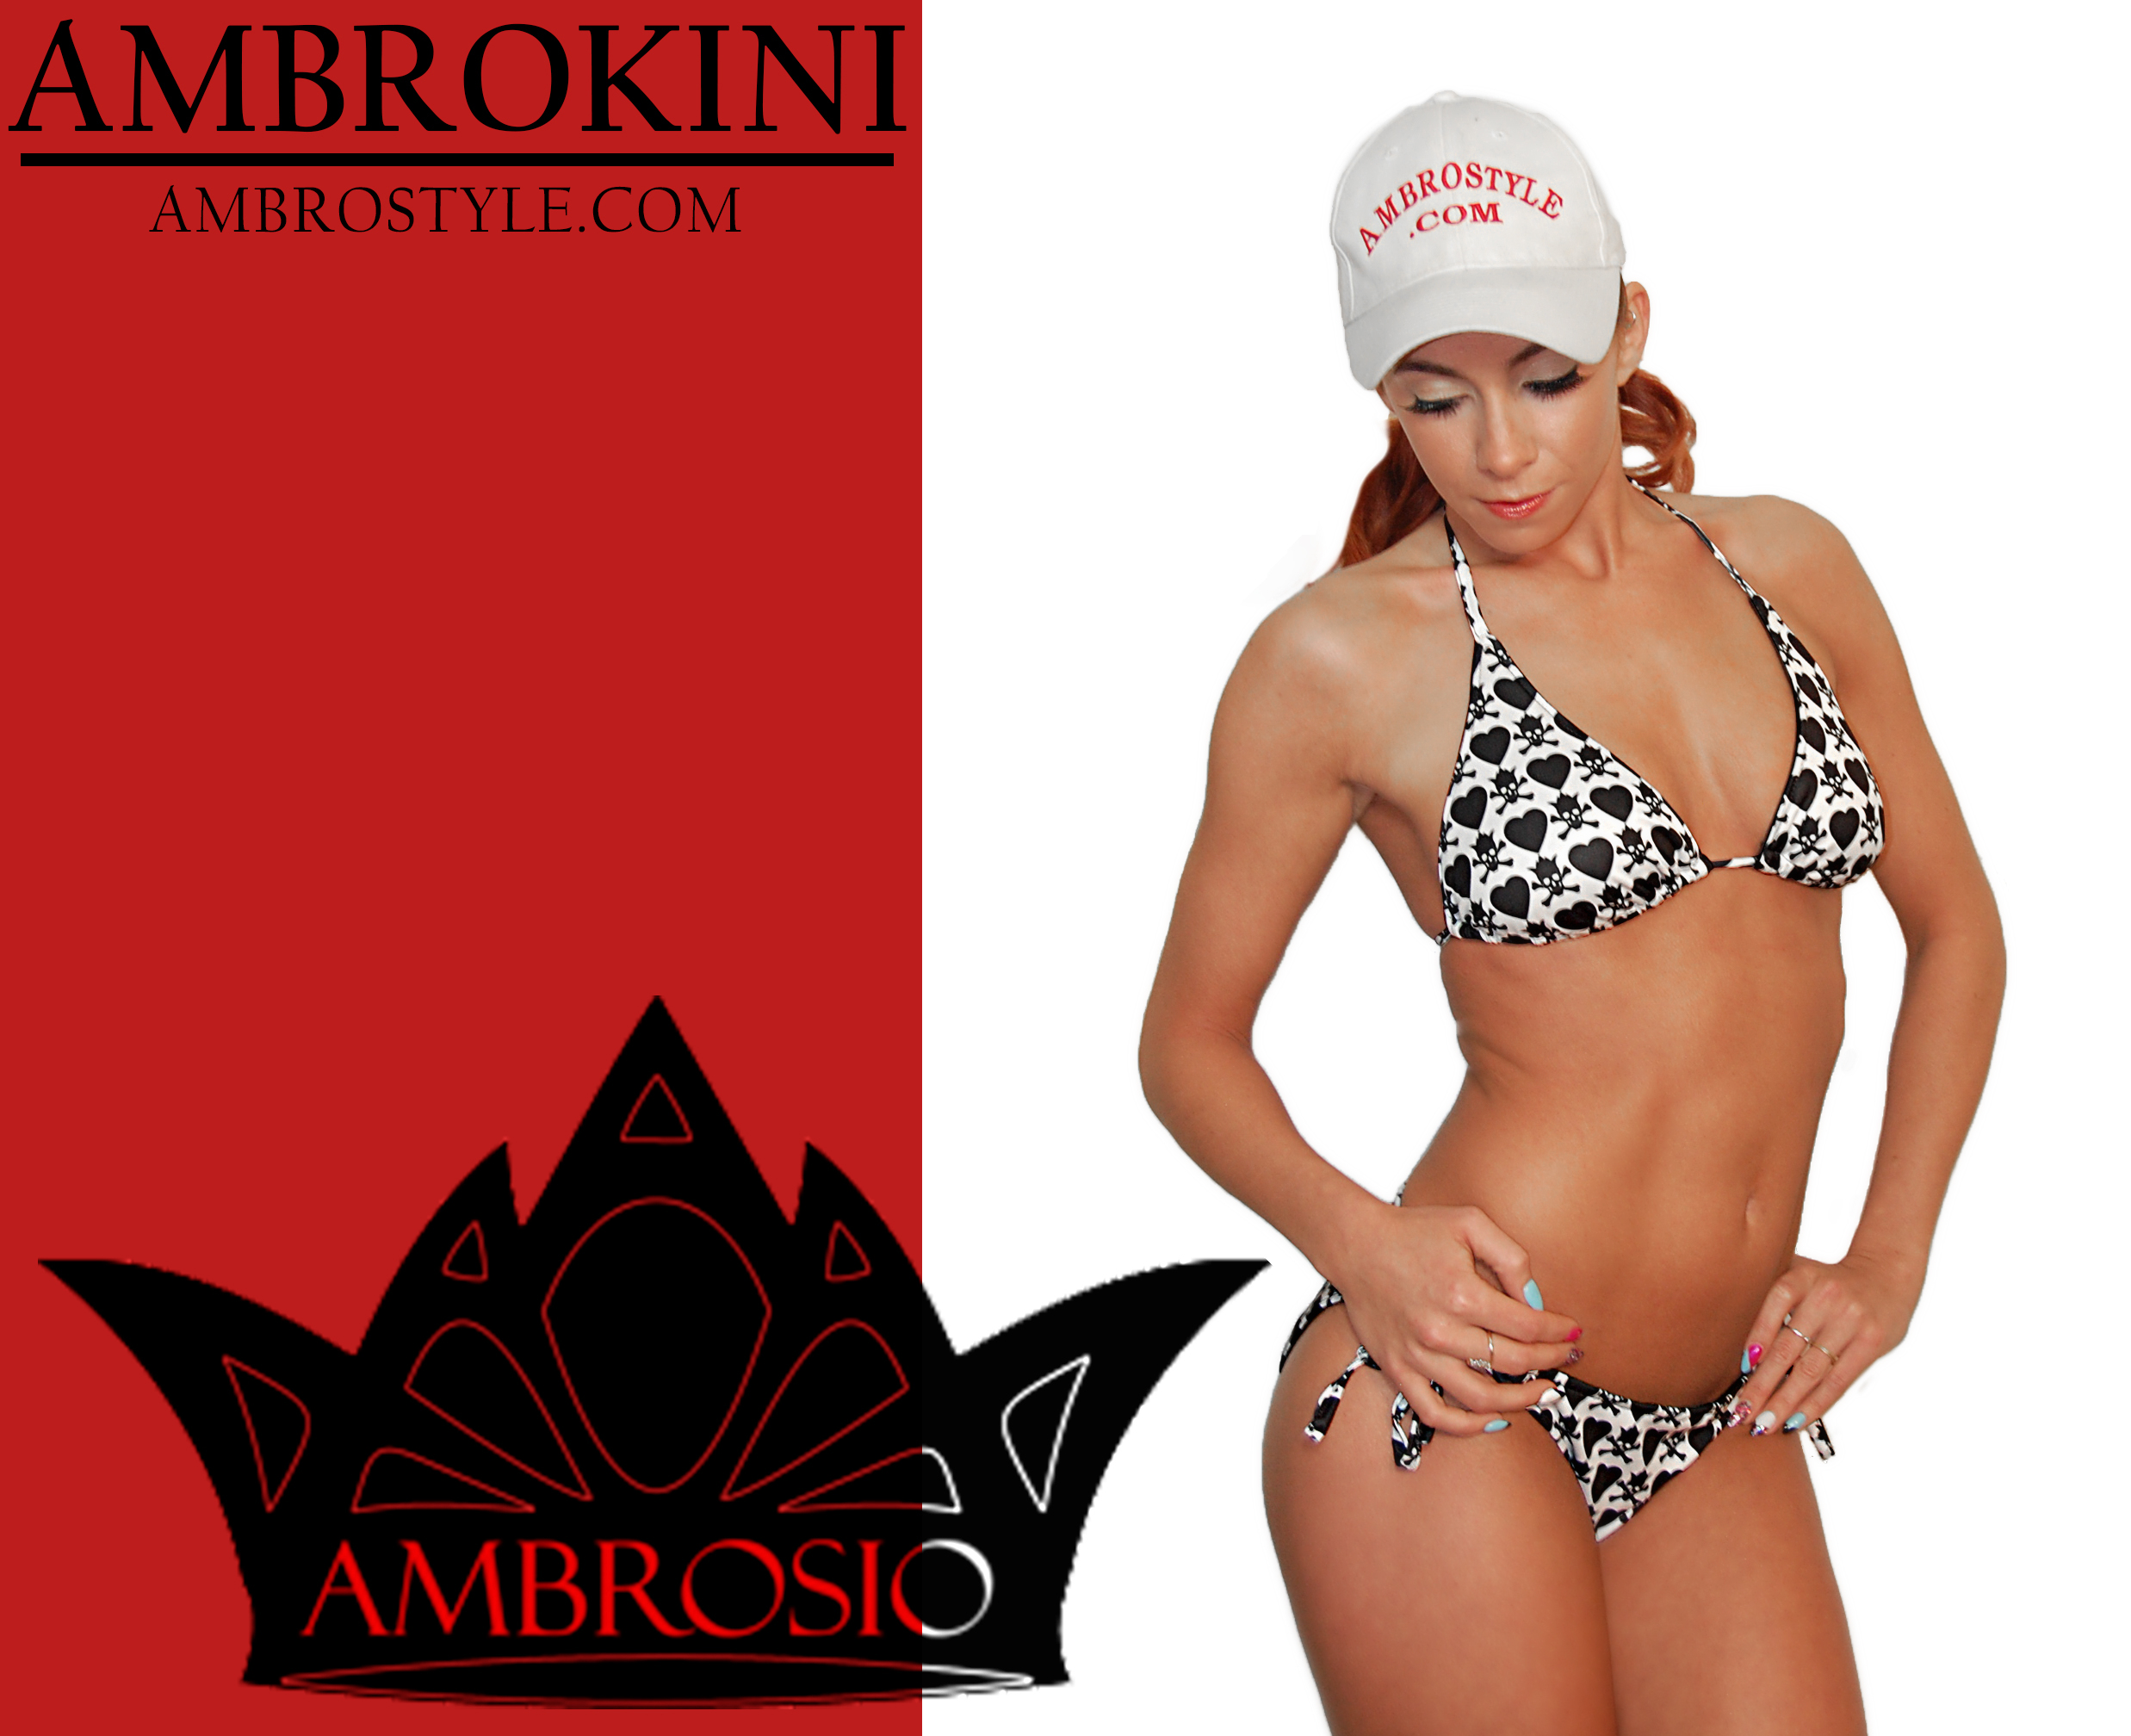 HAT-WITH-B&W-BIKINI.jpg